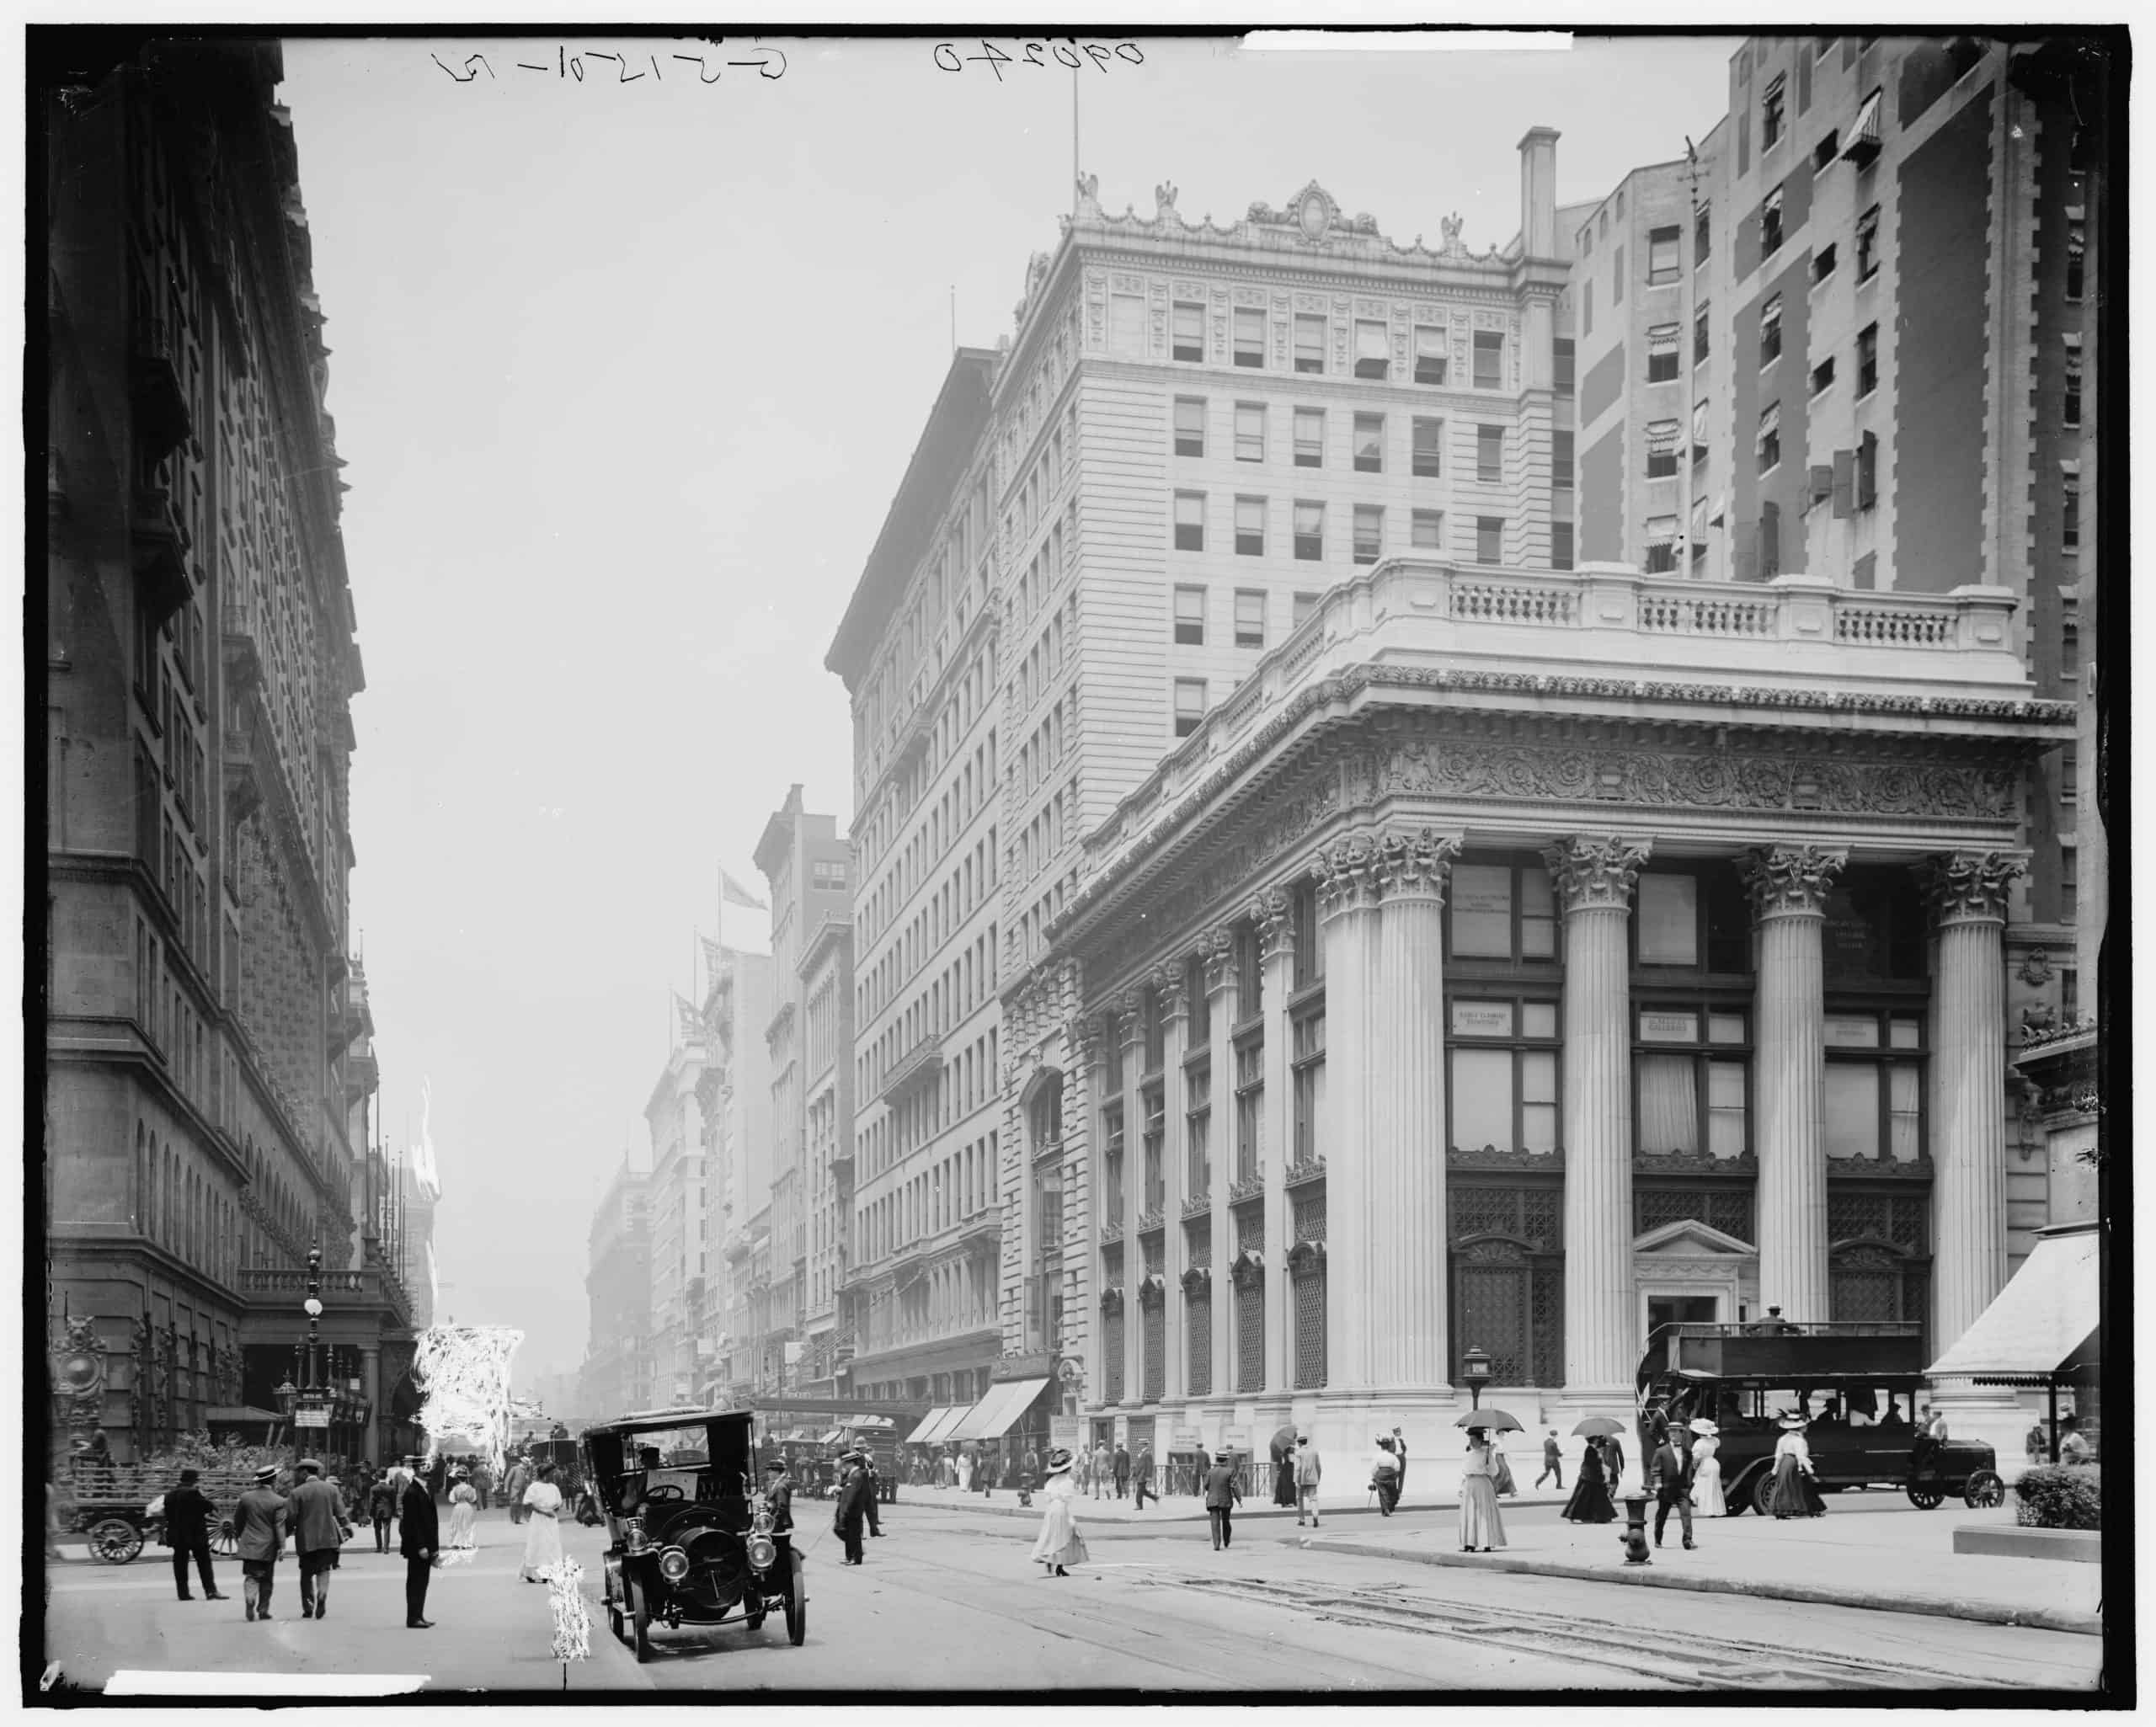 Thirty-fourth Street, New York, N.Y., Detroit Publishing Co, between 1900 and 1915